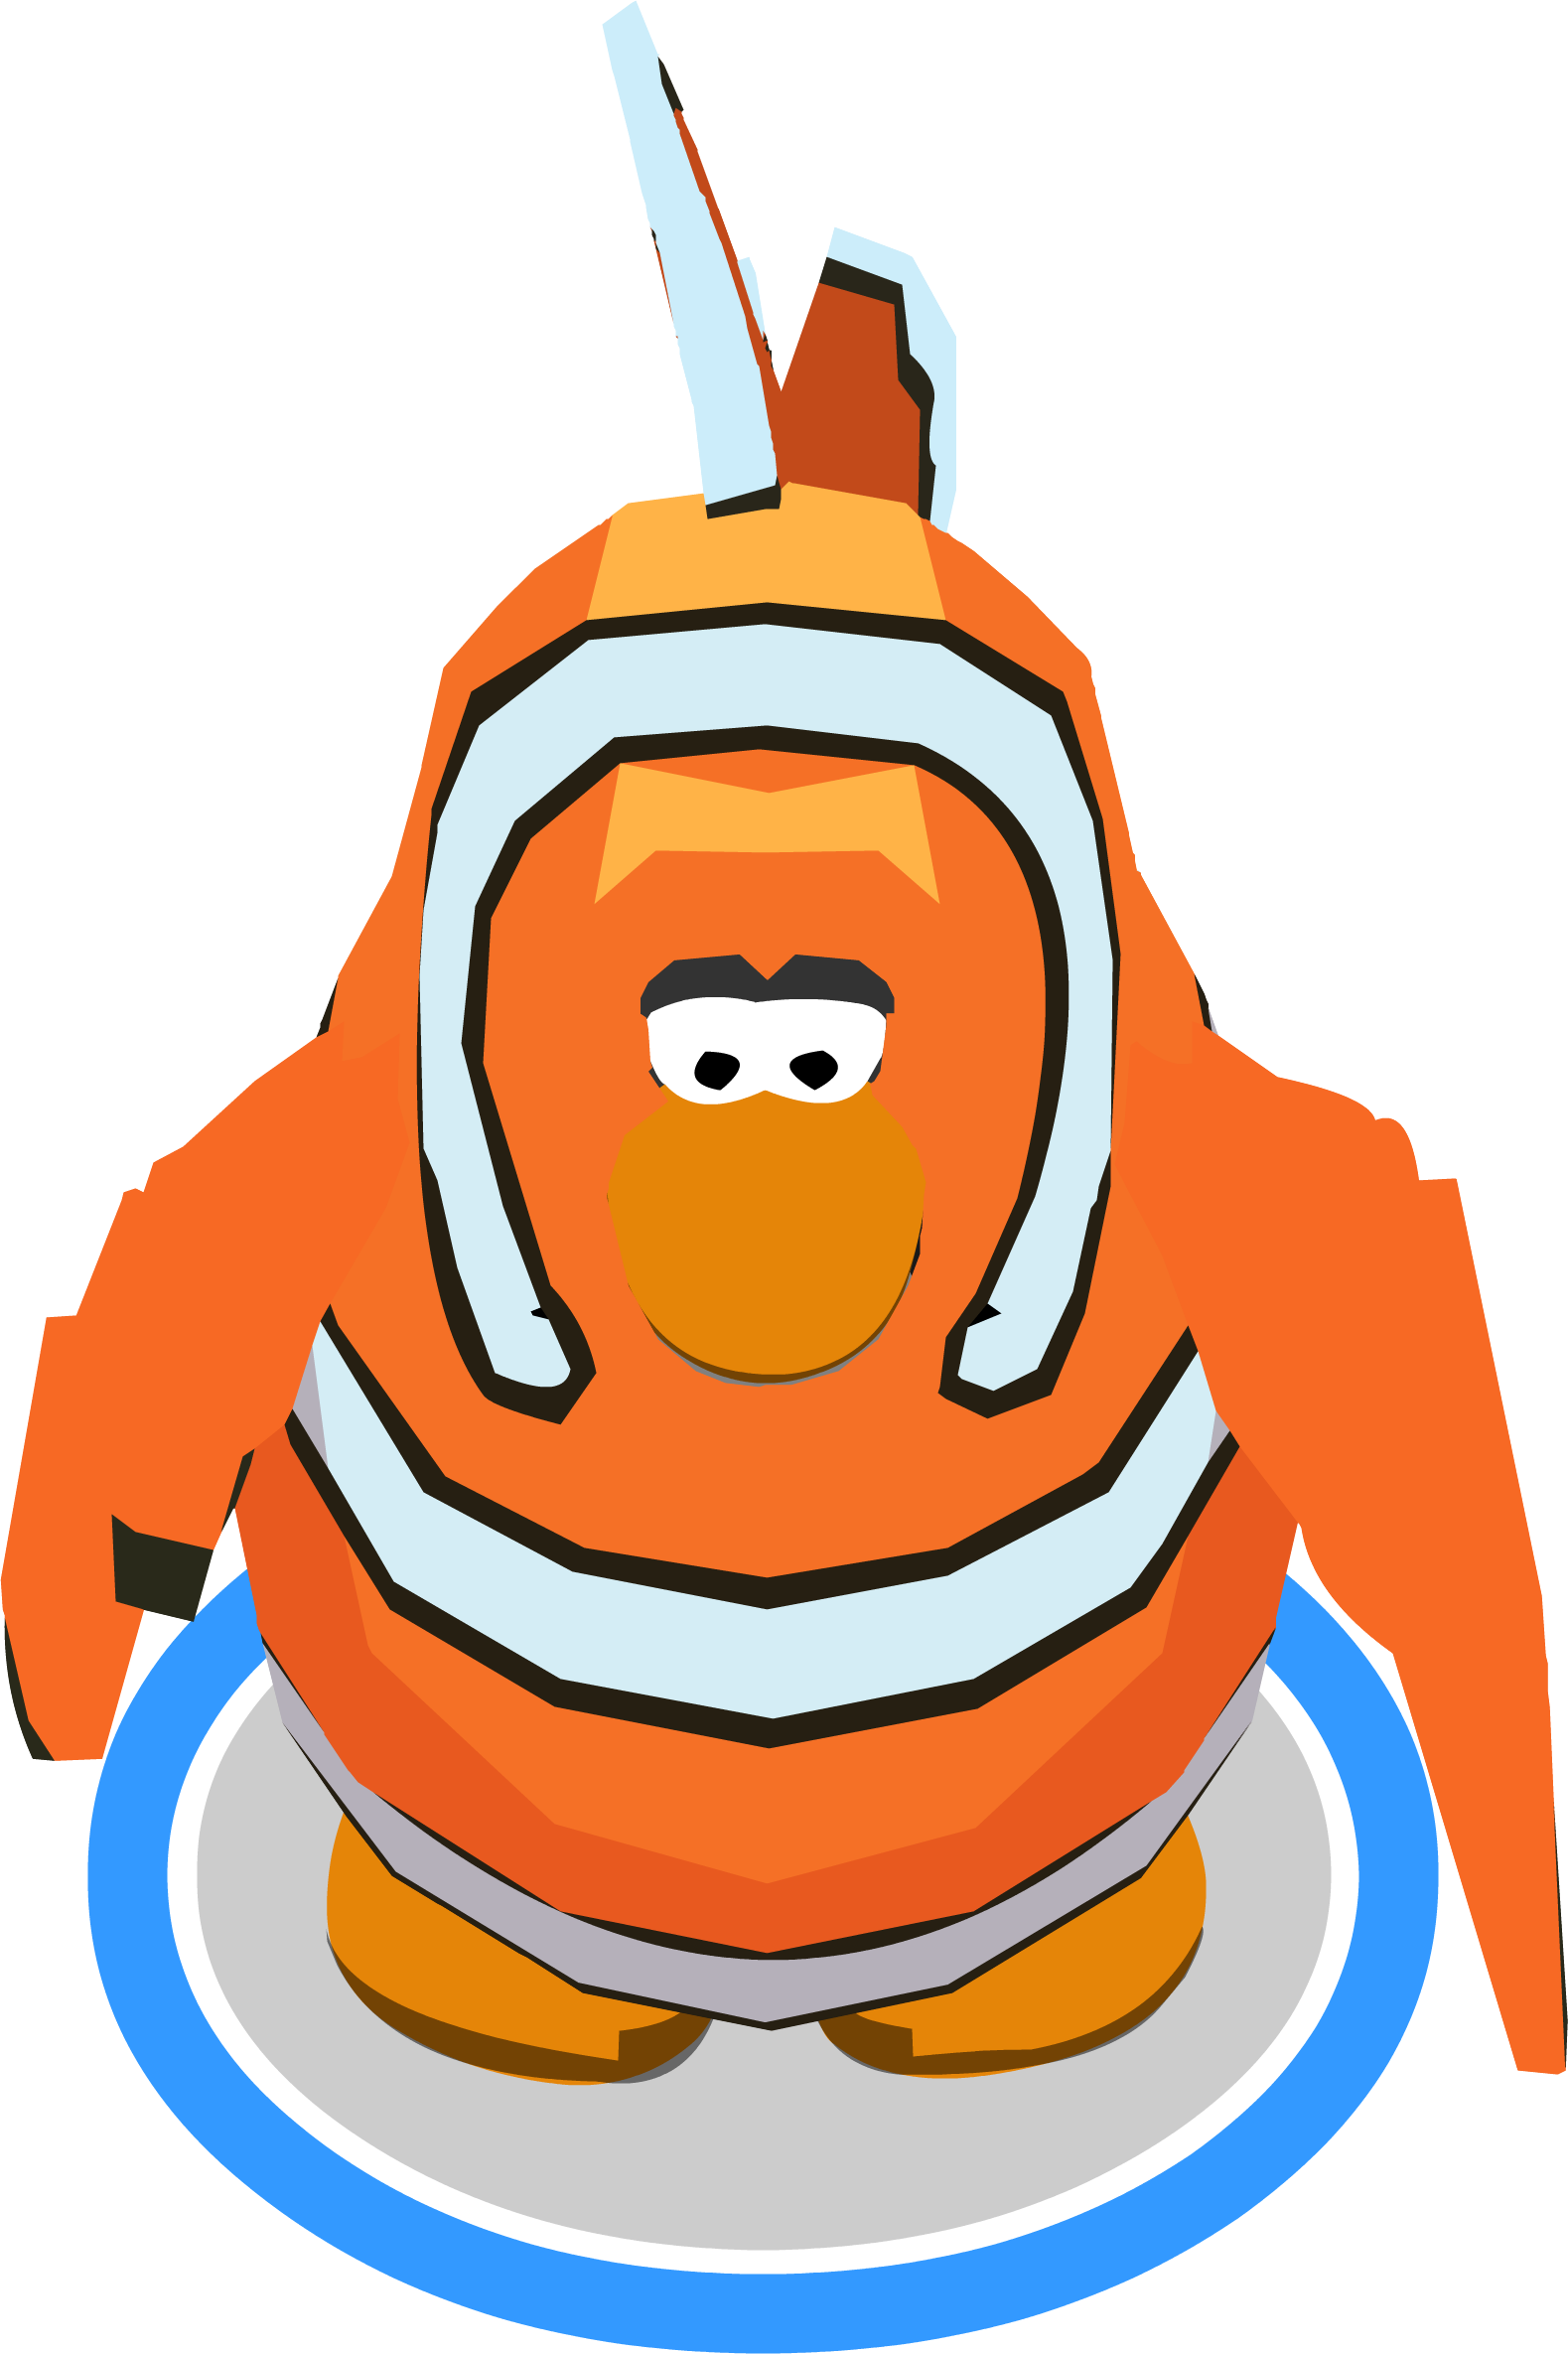 Image nemo in png. Costume clipart game